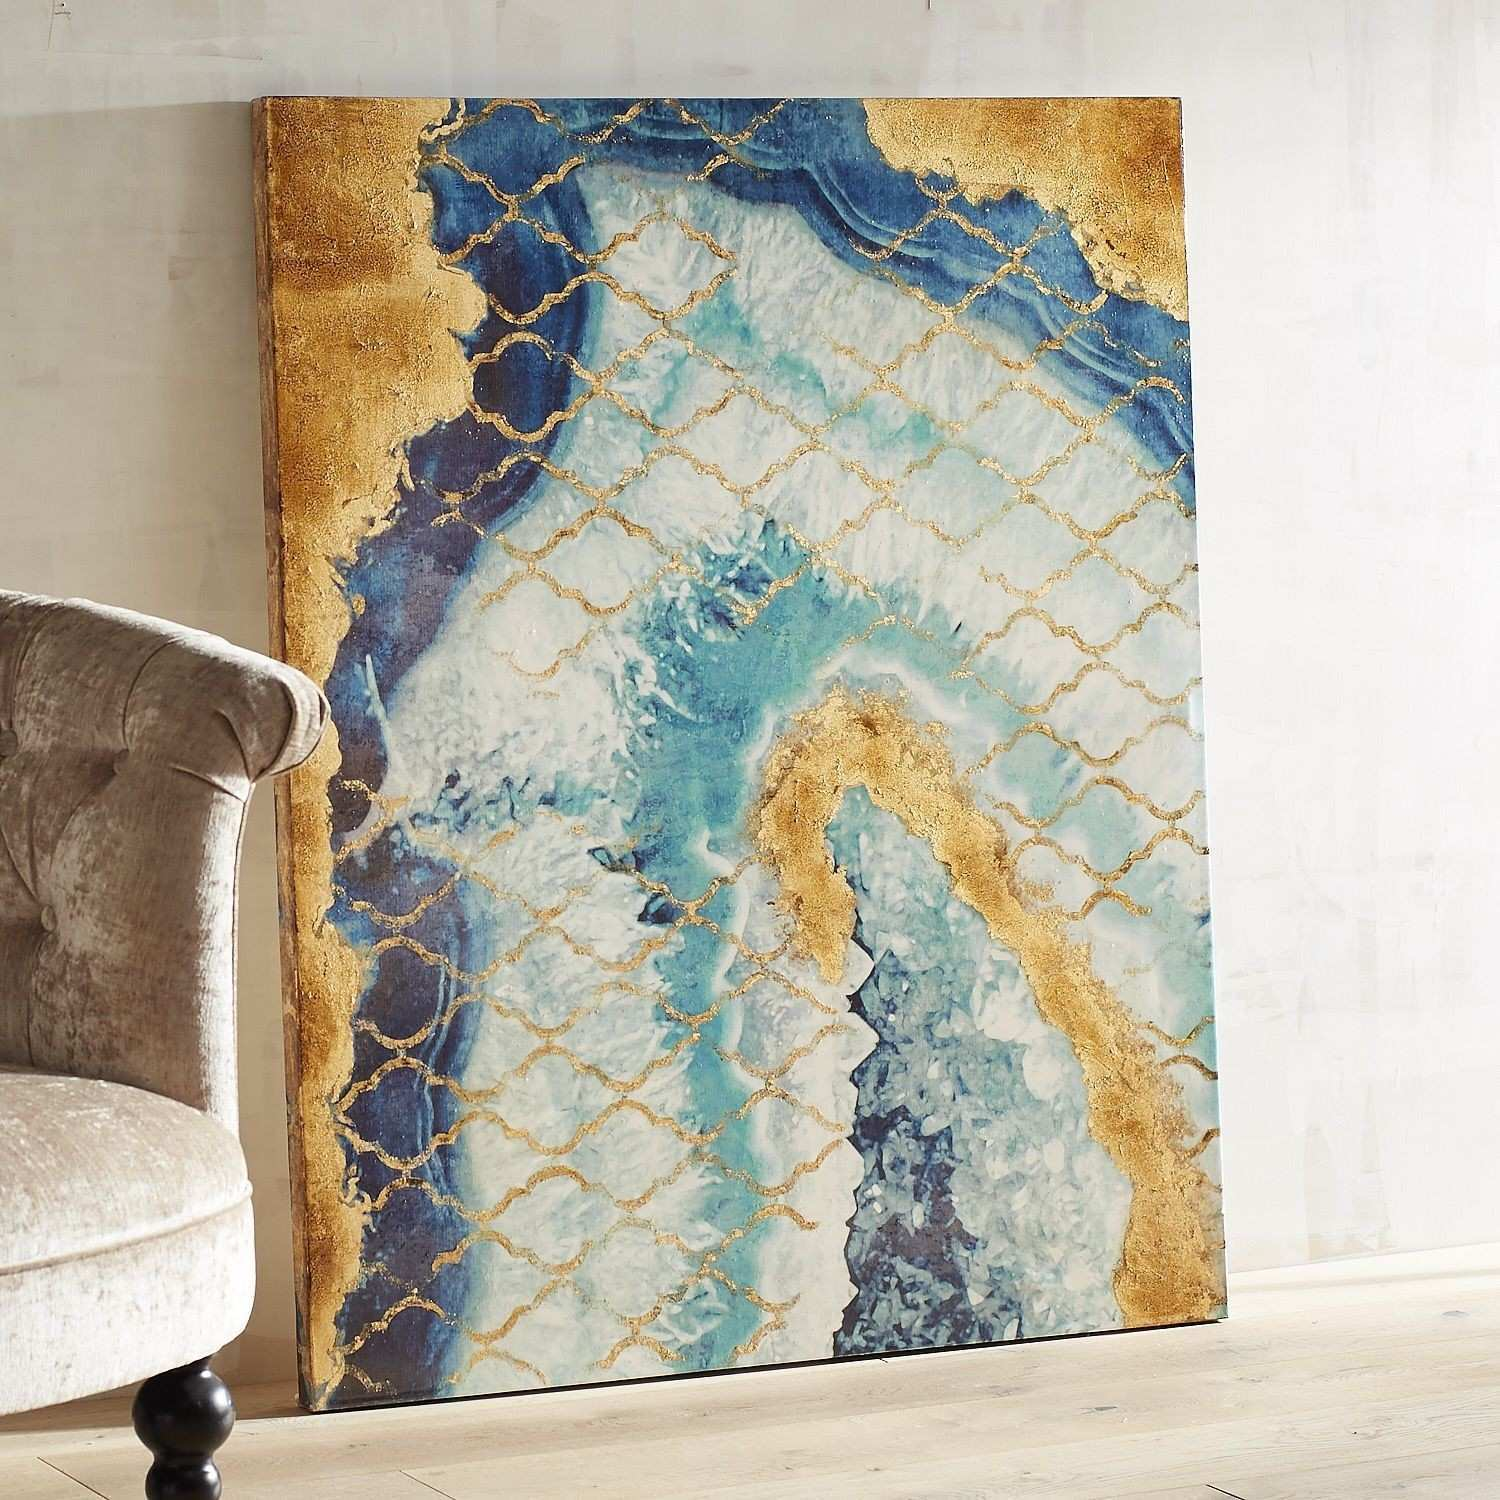 ly nature could inspire the dynamic blending of color pattern and